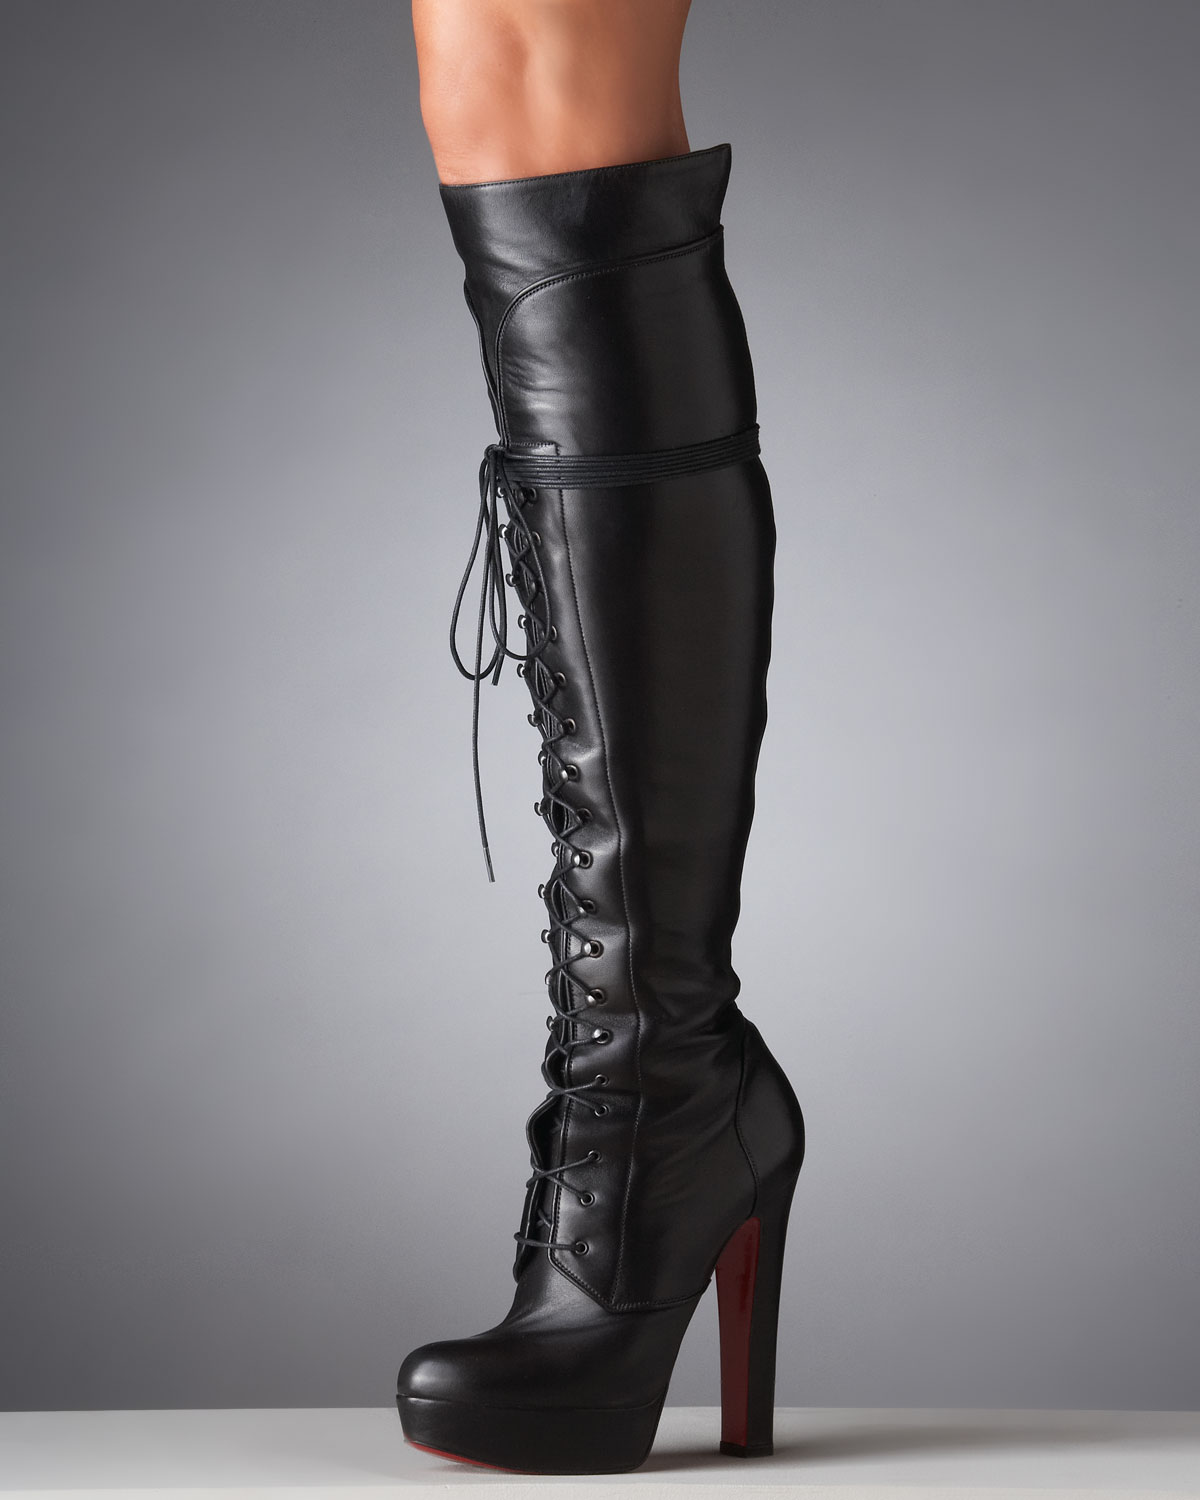 eda99529e21e Lyst - Christian Louboutin Nardja Lace-up Platform Boot in Black